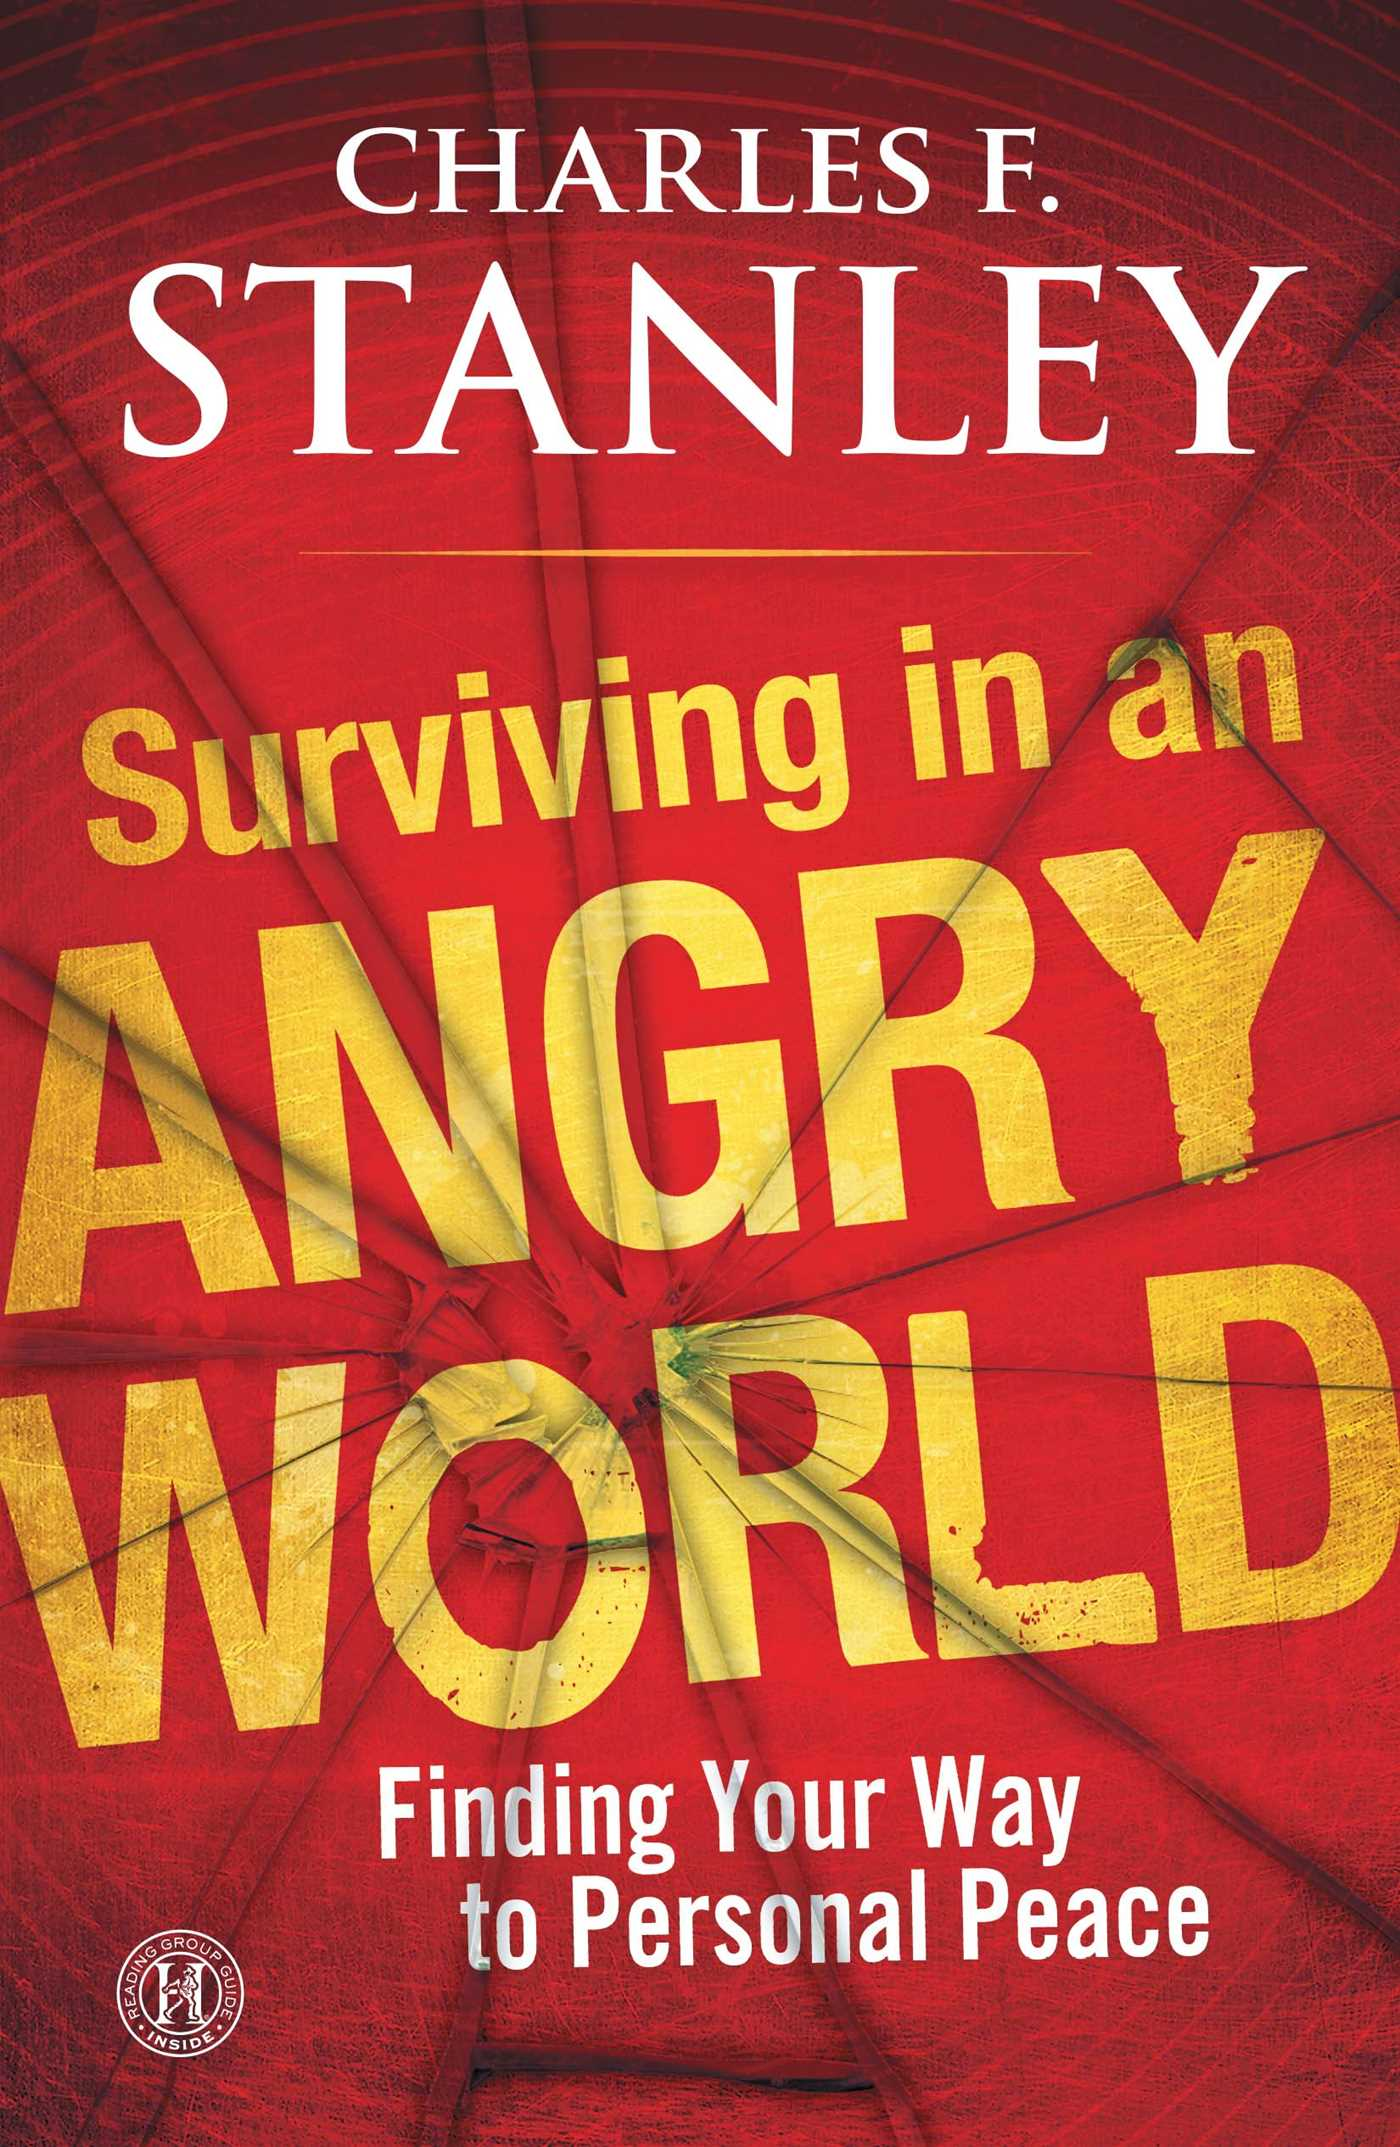 Surviving in an angry world 9781439189993 hr